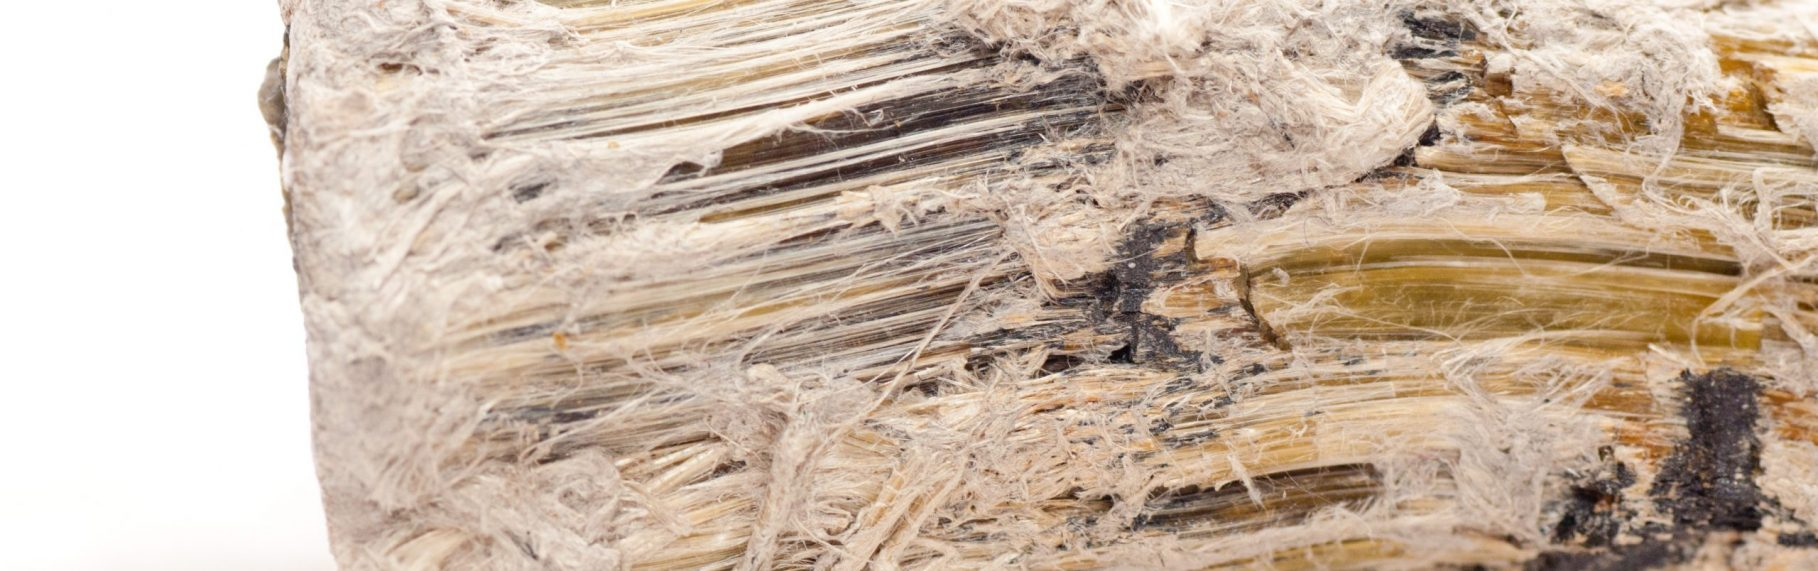 Asbestos Removal Risk Assessment Services